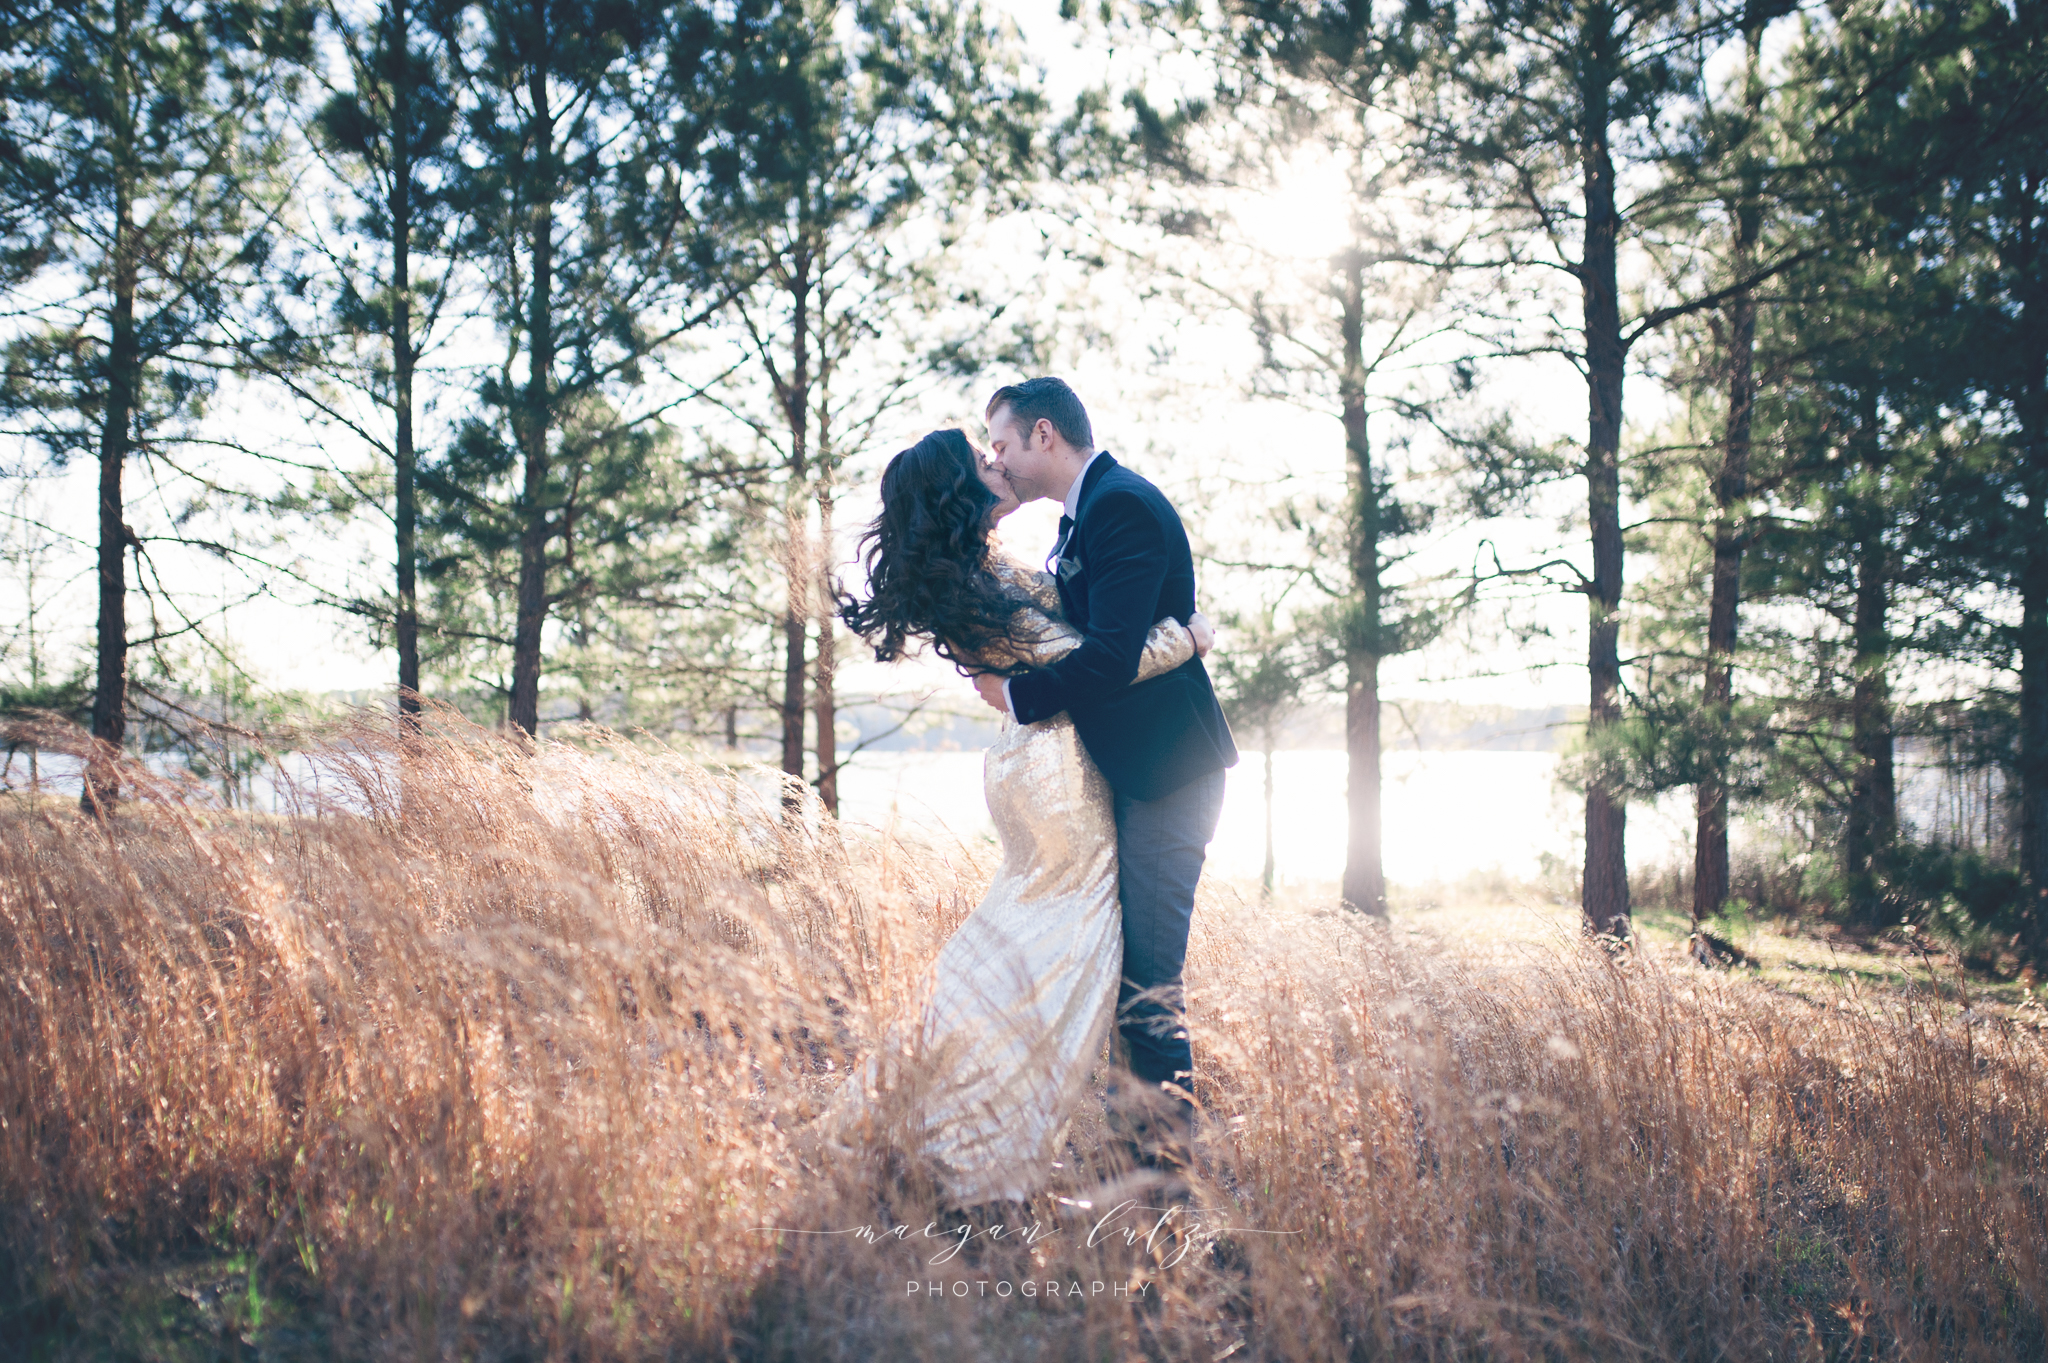 Formal engagment couples session in Atlanta Georiga by traveling Pennsylvania photographer